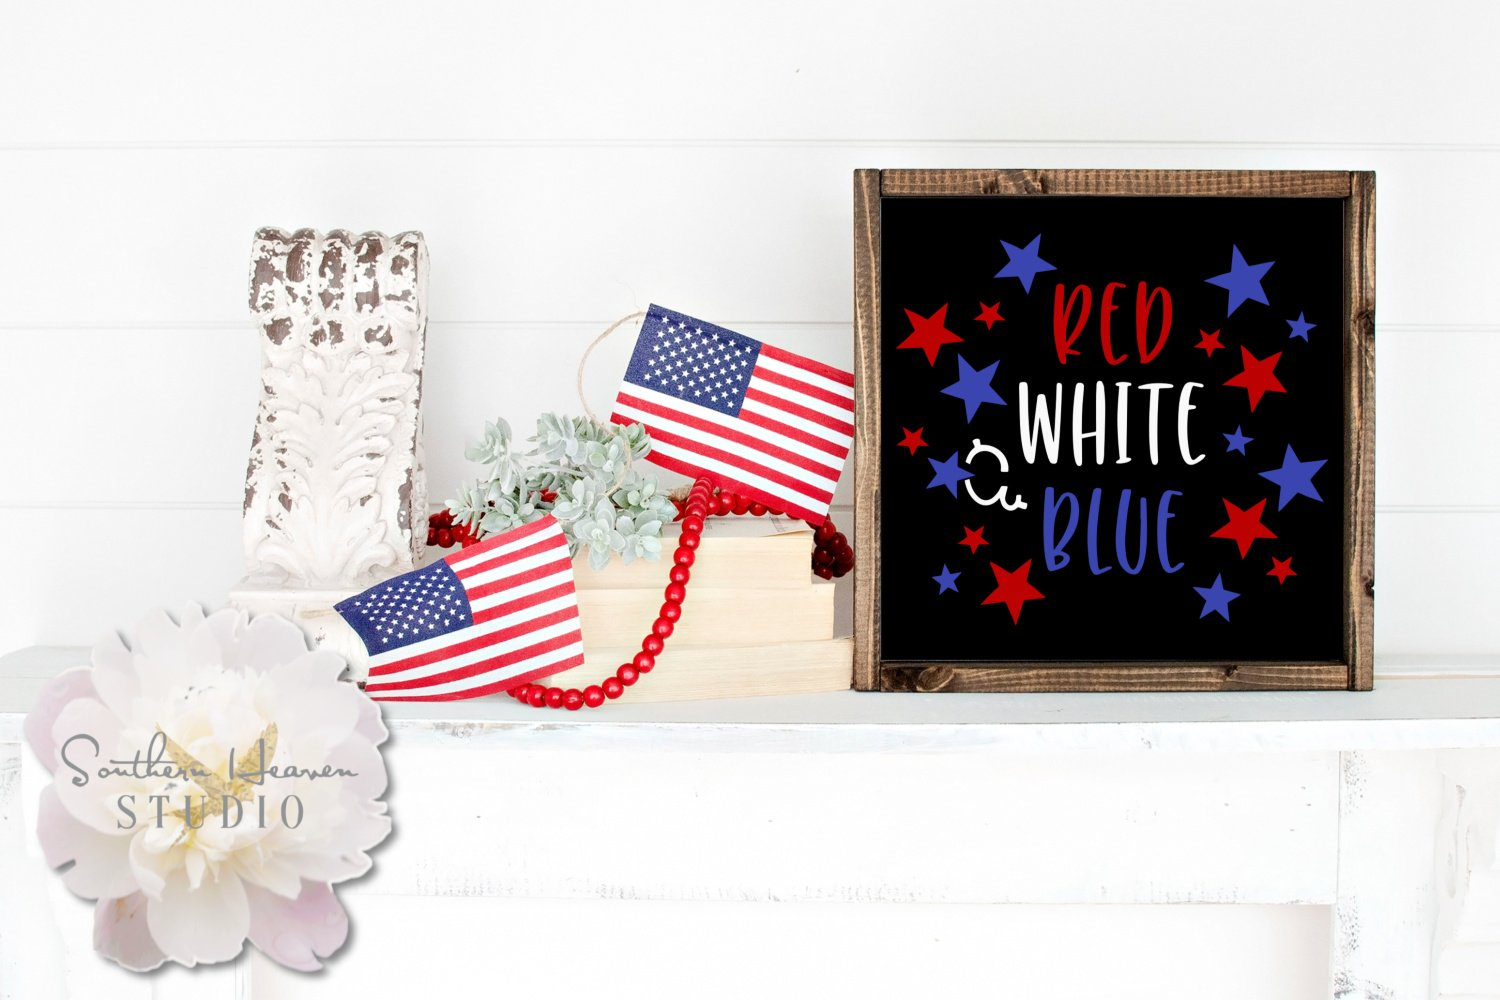 RED, WHITE & BLUE - SVG, PNG, DXF and EPS example image 2